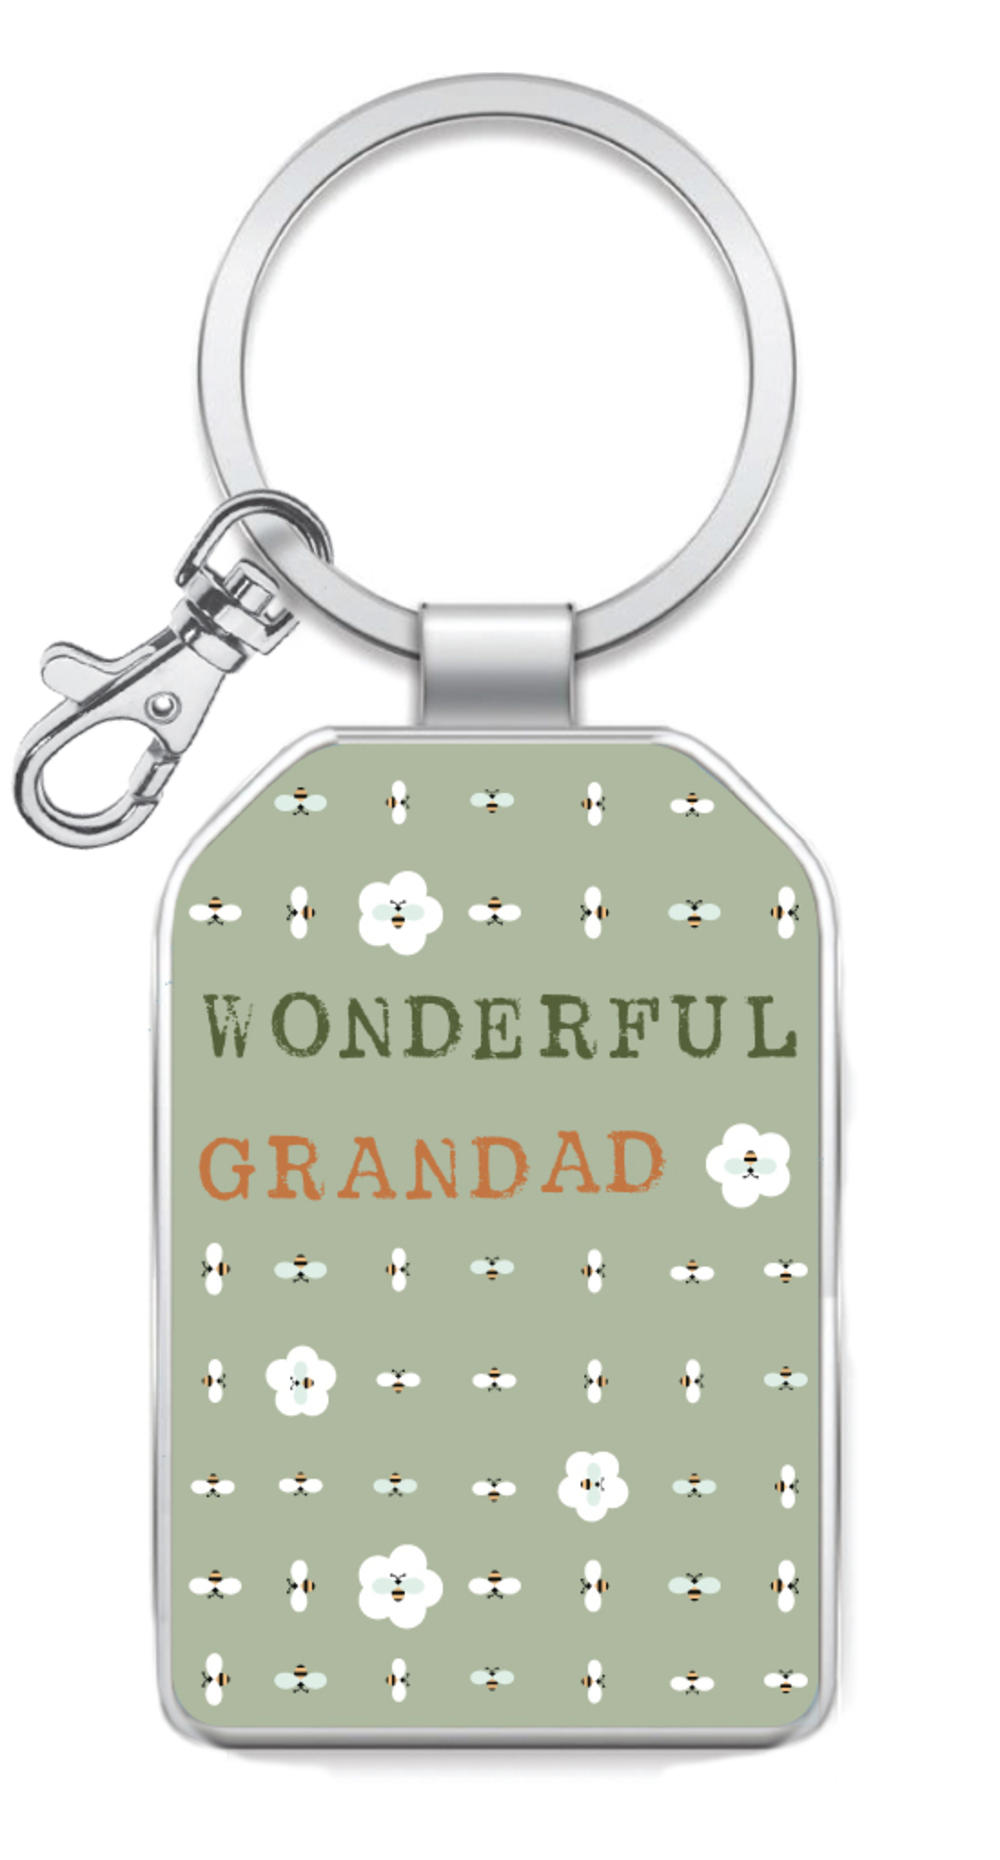 Wonderful Grandad Little Wishes Metallic Keyring